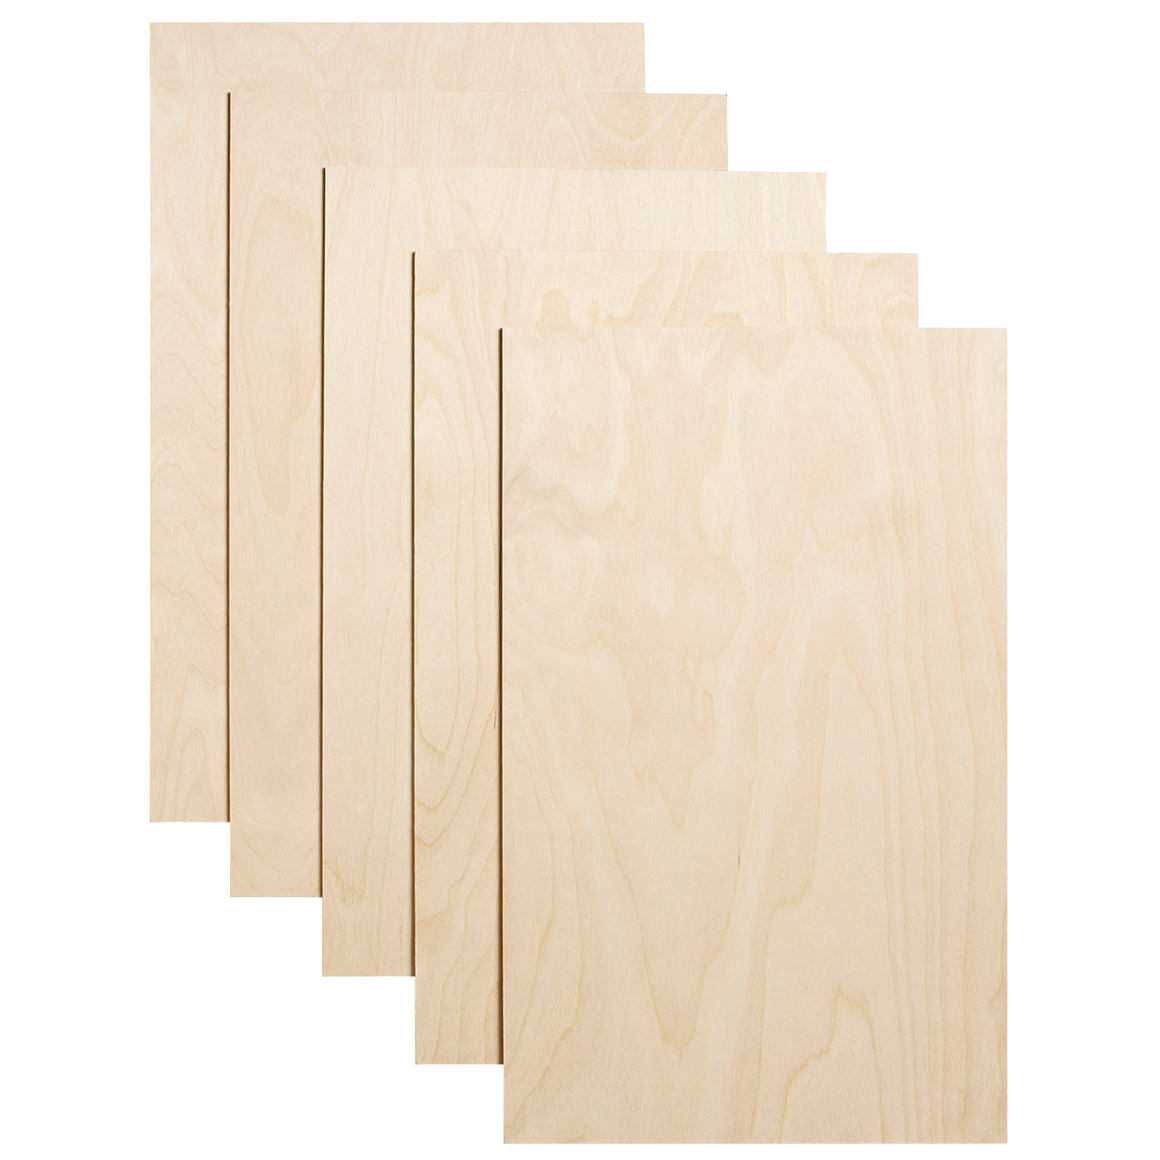 "Dremel 1/8"" Acrylic - Birch Plywood - 5 Pack - Laser Cutter Materials"